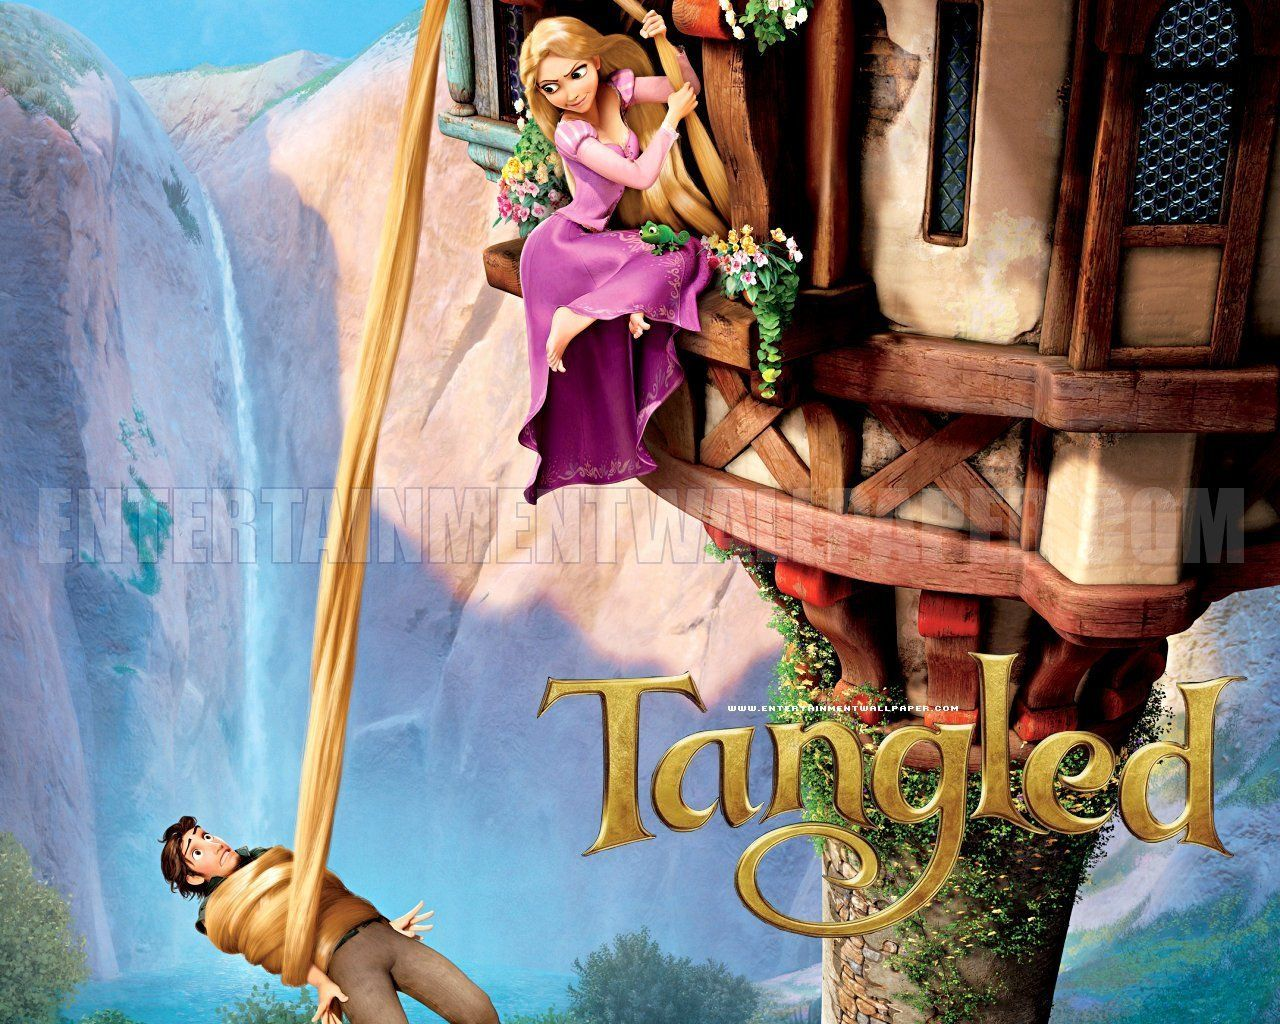 tangled disney wallpaper - princess rapunzel (from tangled